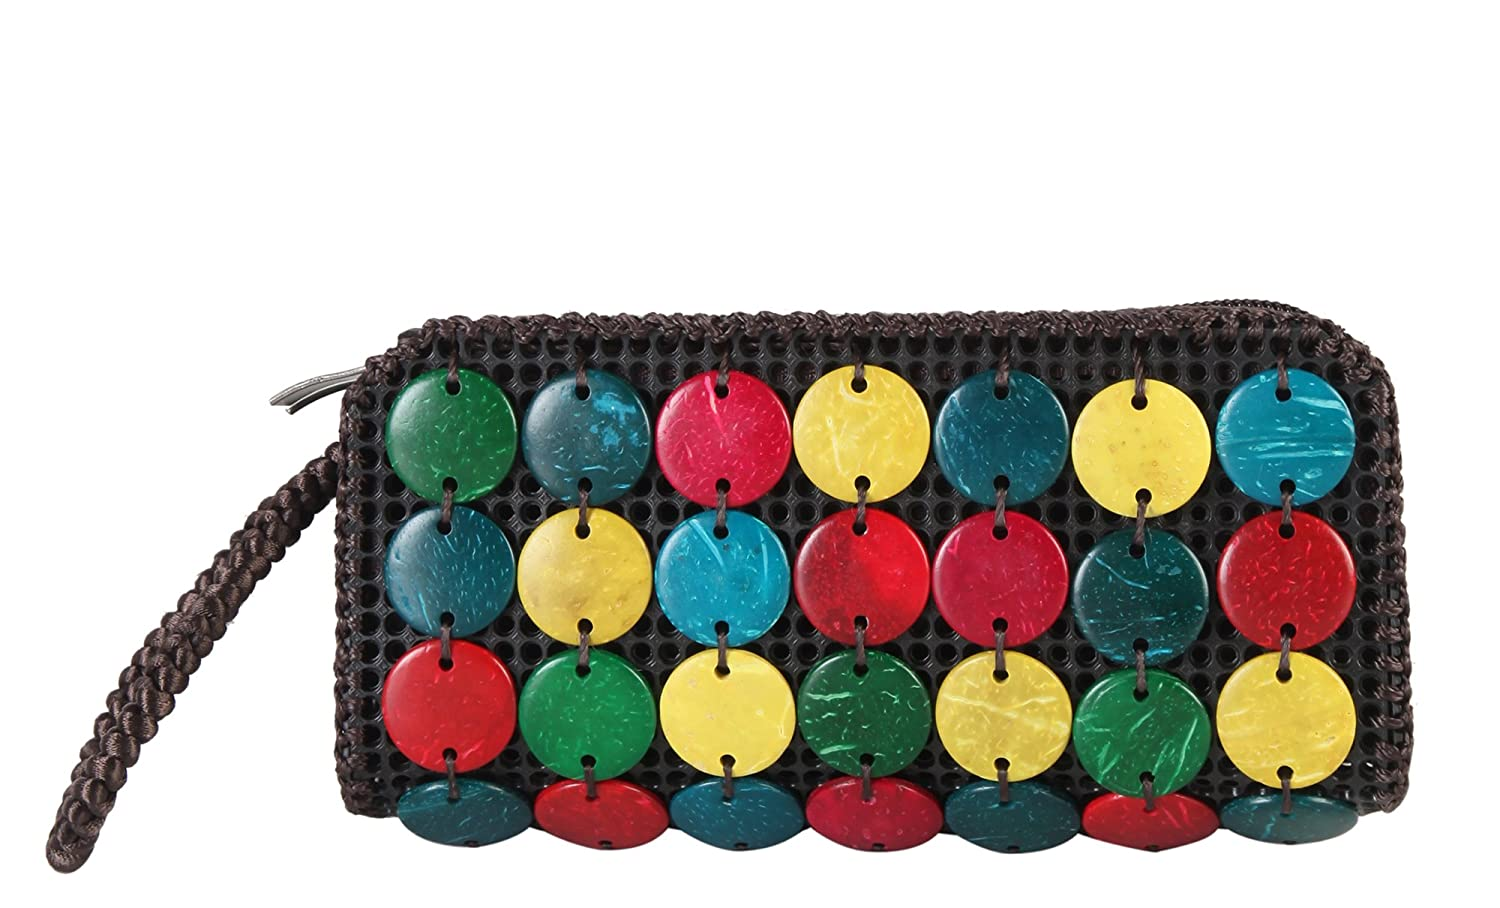 Diophy Colorful Woven Clutch Accented with Beads Décor Womens Purse Wallet Wristlet Handbag YW-3243 YW-3244 YW-3245